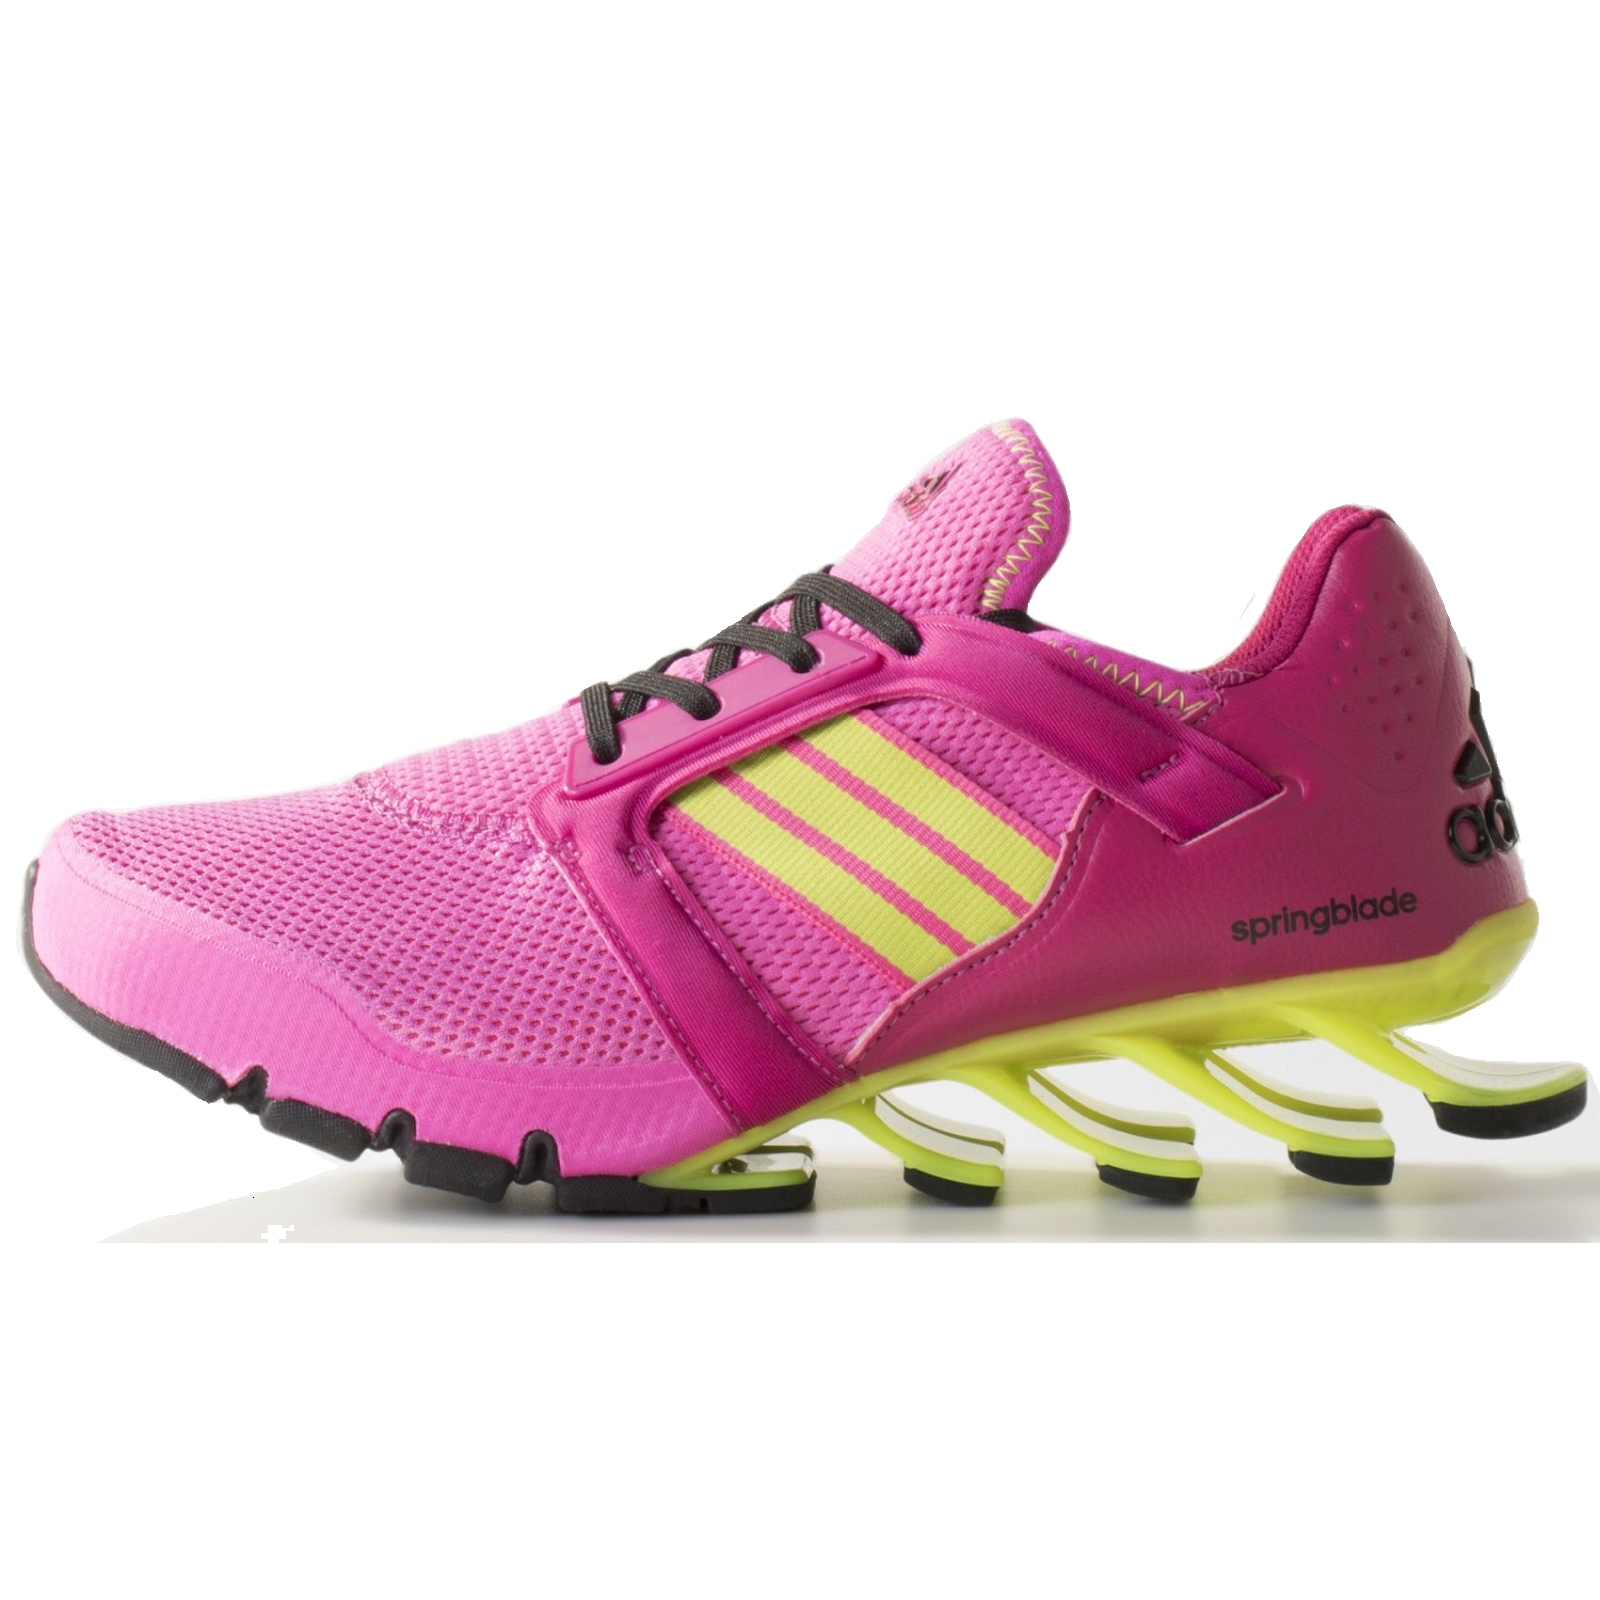 separation shoes f5ba9 b9515 Adidas springblade e-force 36-40 36-40 36-40 nuovi solyce ...